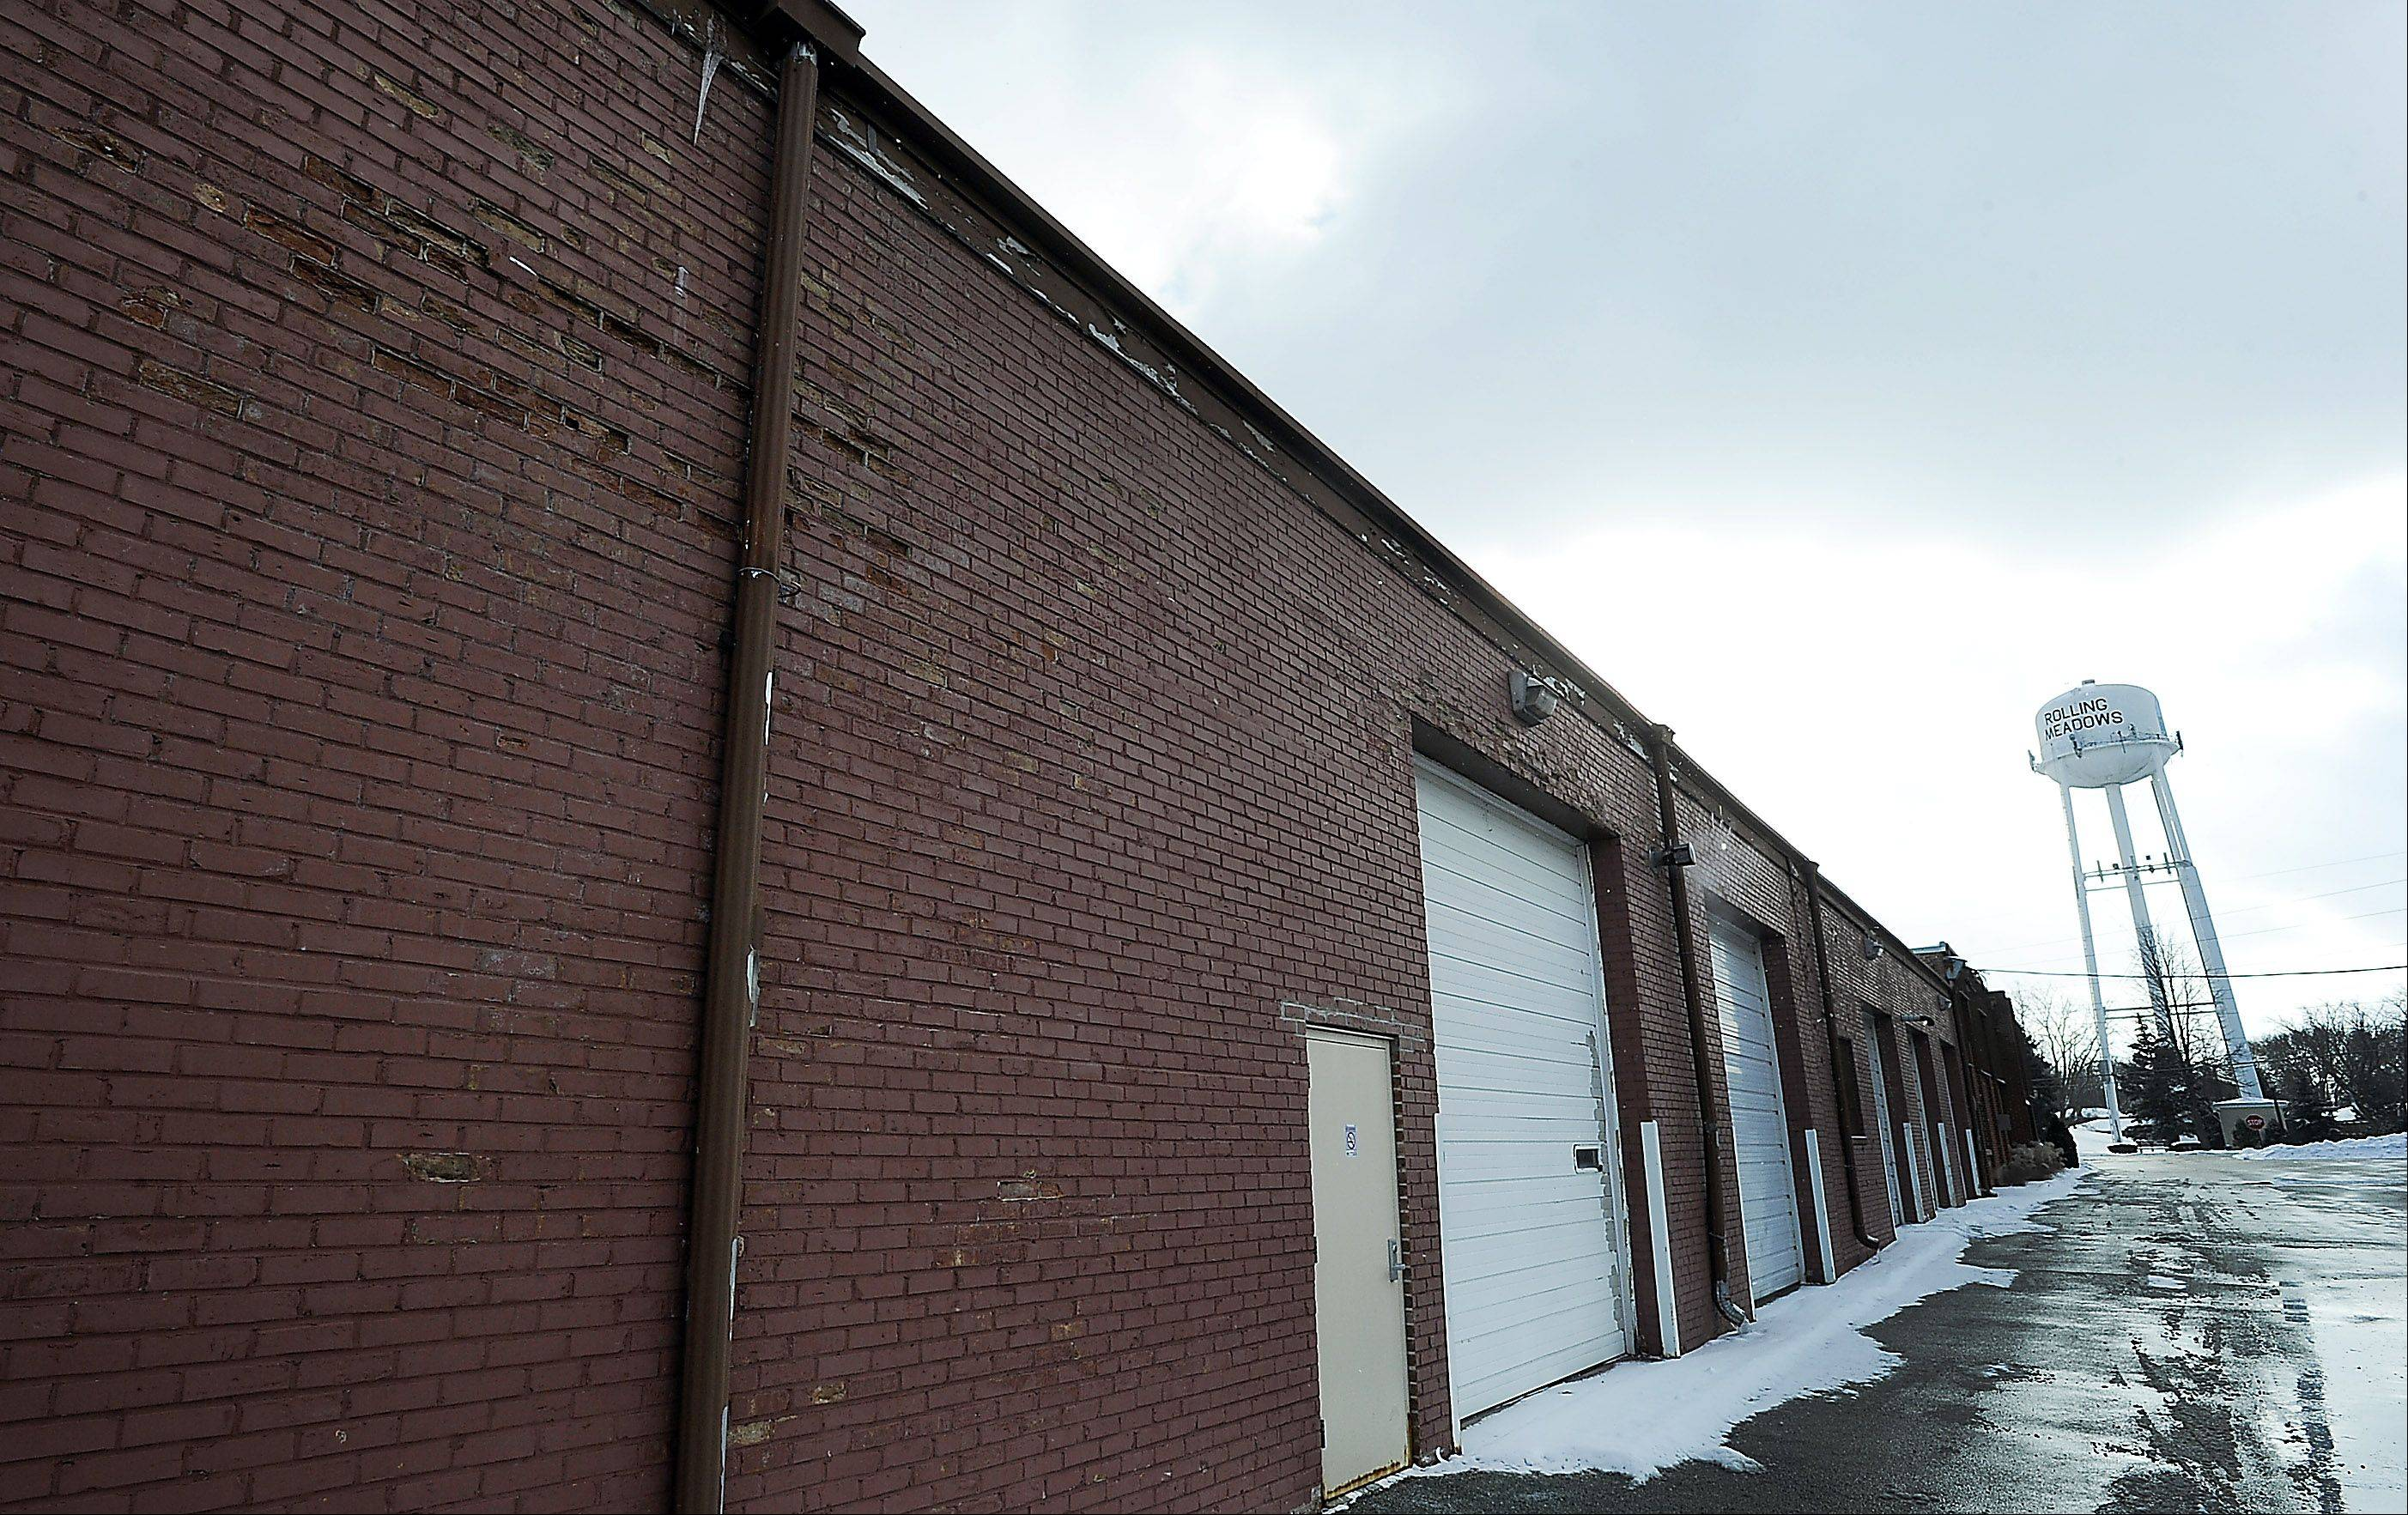 Rolling Meadows officials took a pass this week on deciding the long-term fate of the city's former public works building on Central Road. The building is in need of major repairs as bricks are falling out of the side facade and its roof is at or beyond its useful life, according to an architectural report.